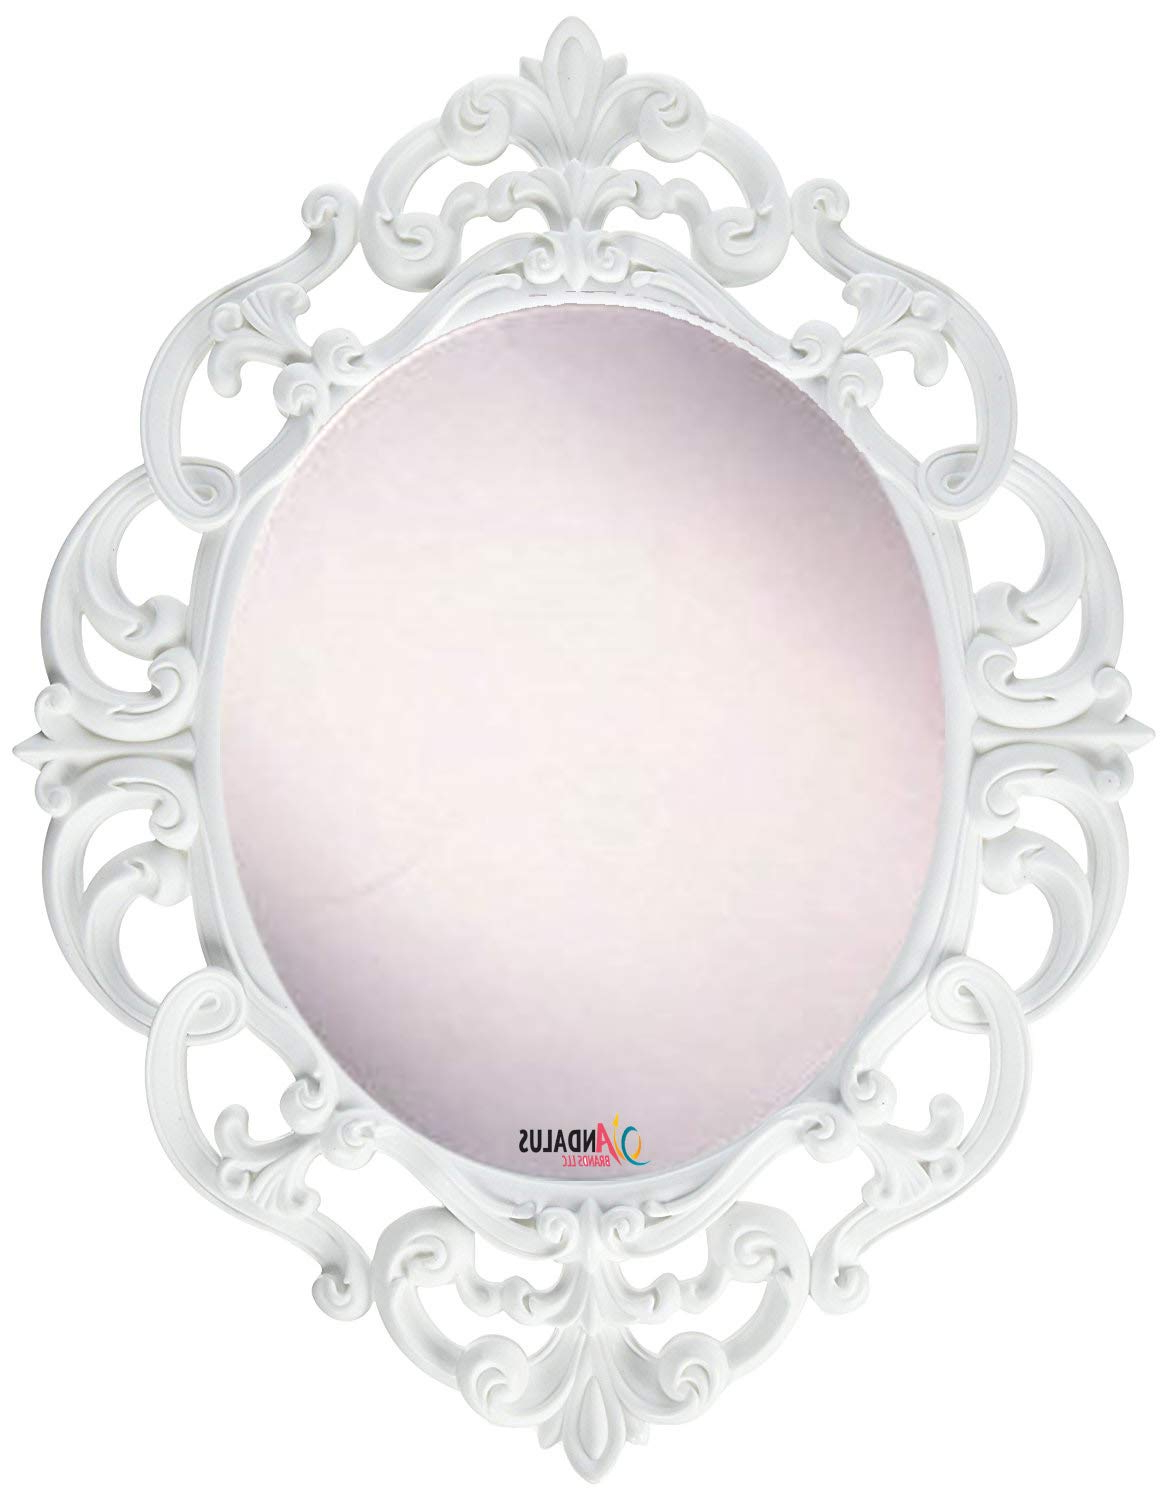 Andalus Small White Oval Vintage Wall Mirror, Ornate Frame, (View 11 of 20)